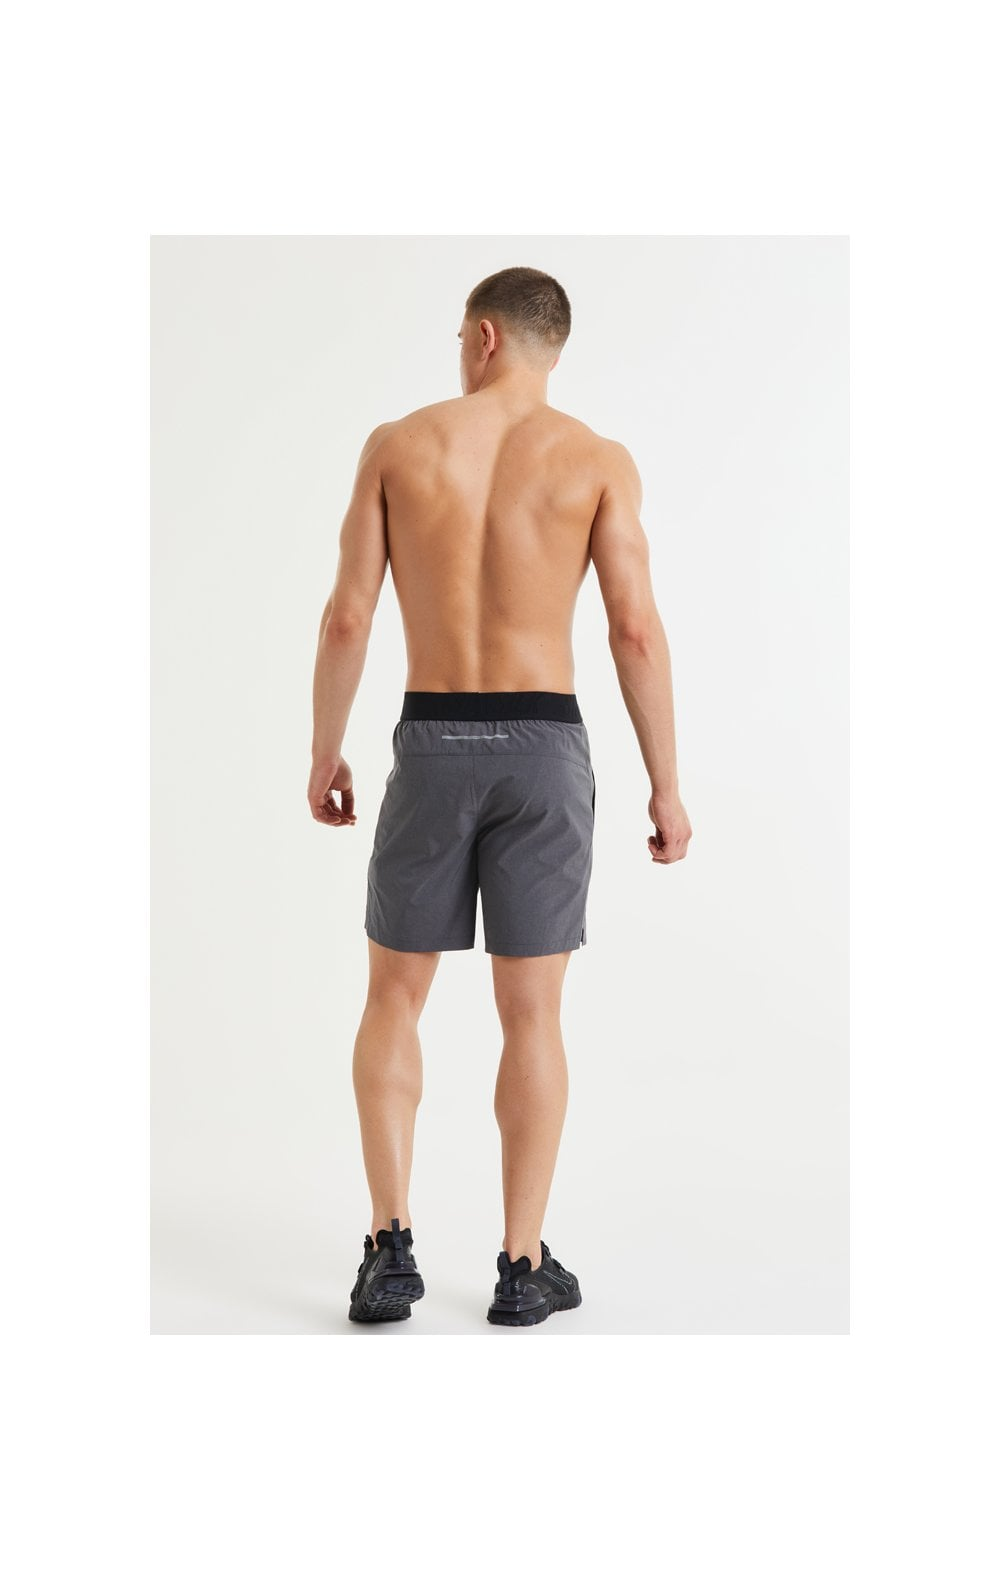 Load image into Gallery viewer, SikSilk Pressure Woven Long Shorts - Charcoal Marl (6)